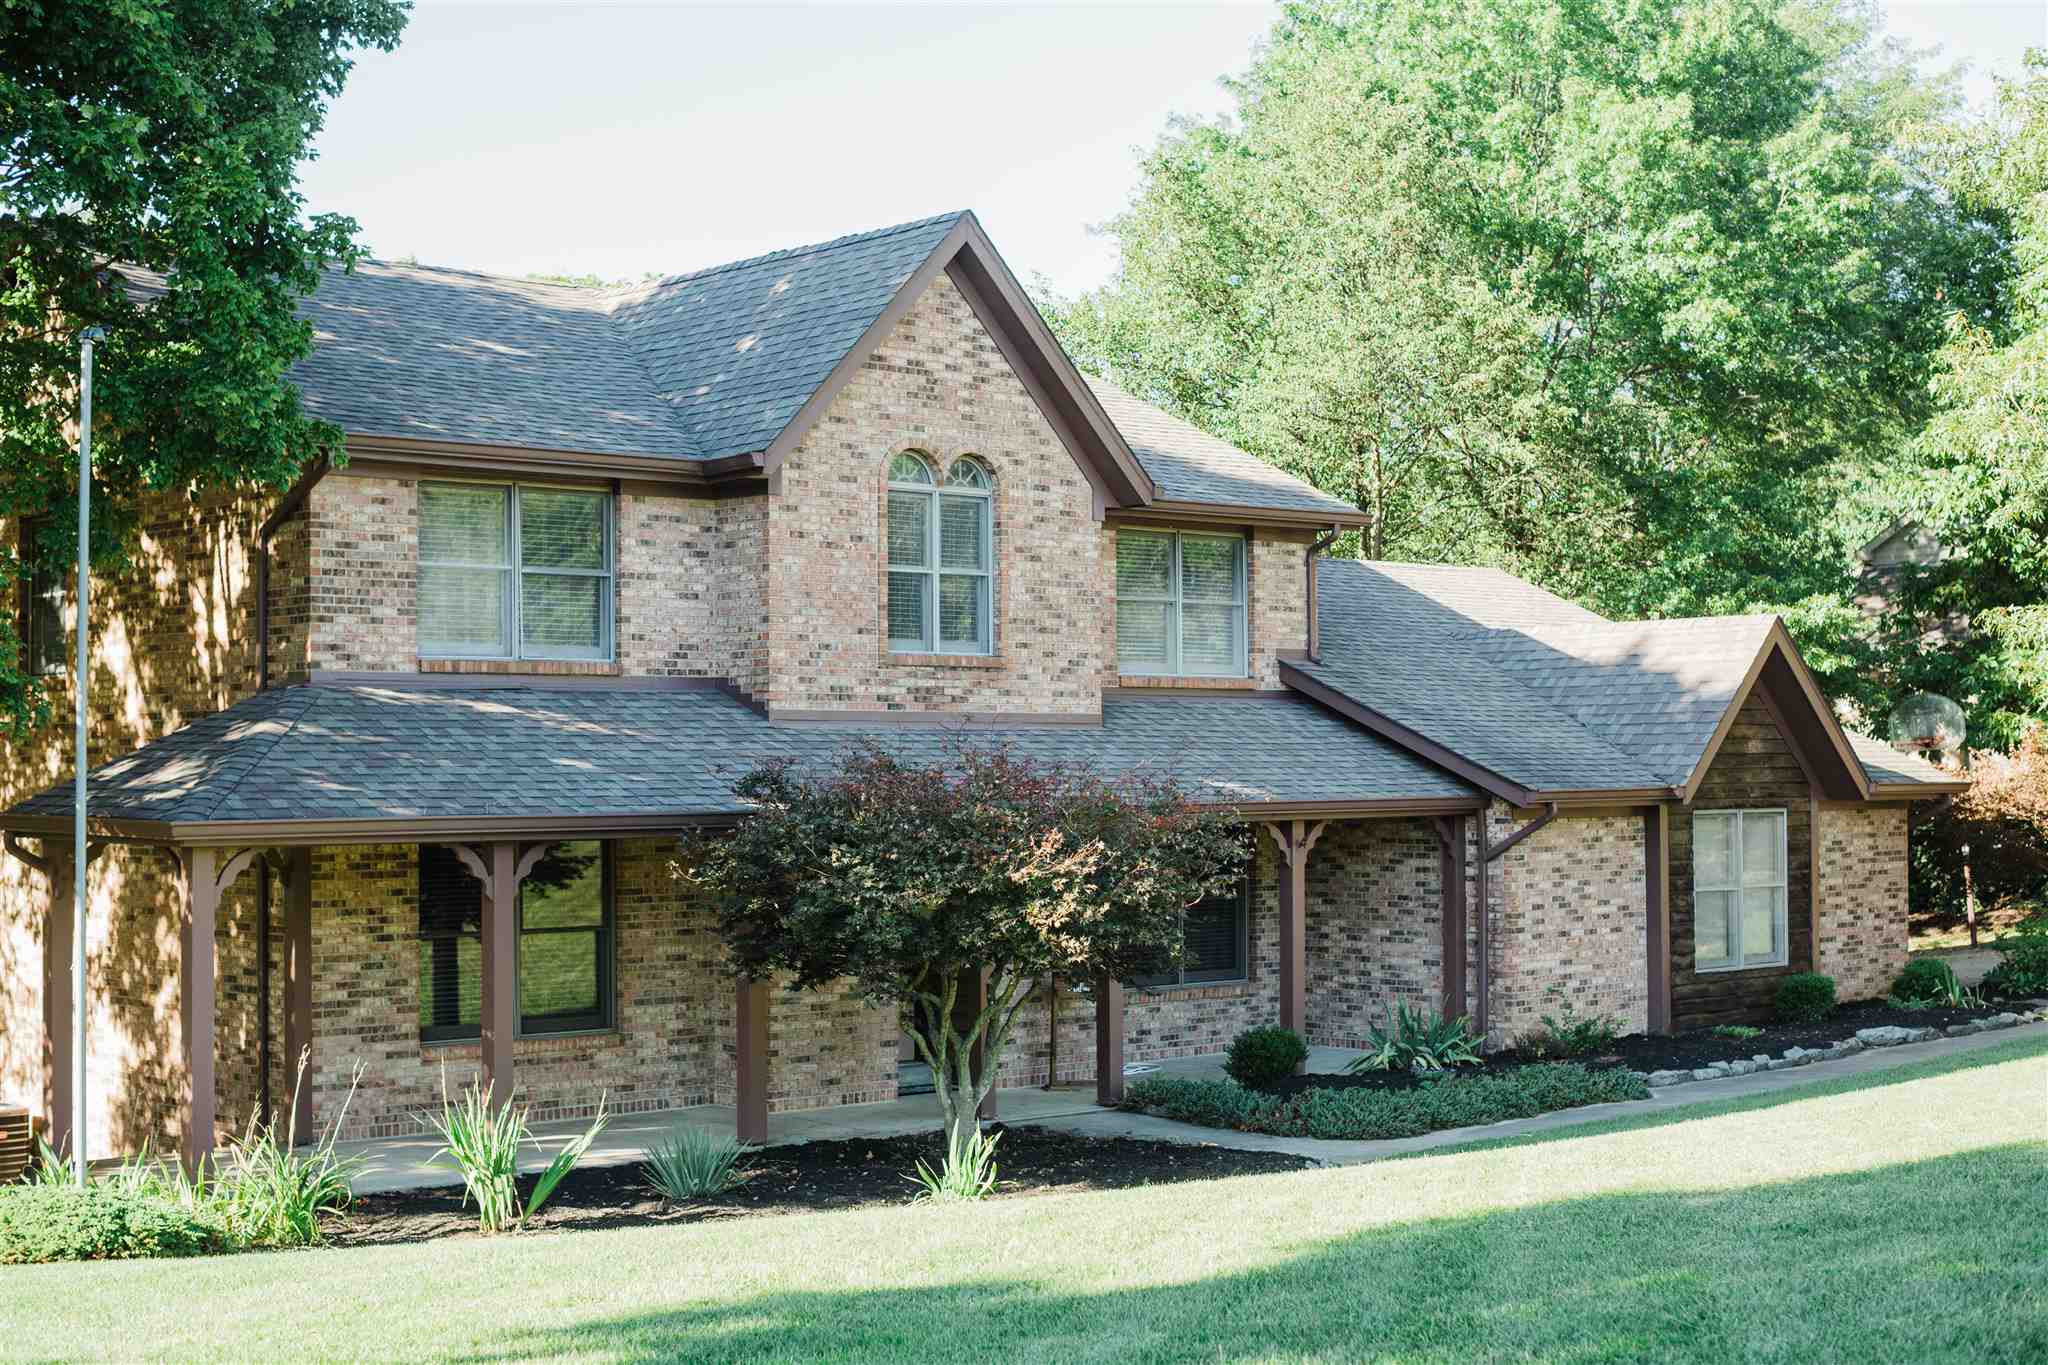 Photo 1 for 3280 High Ridge Dr Taylor Mill, KY 41015